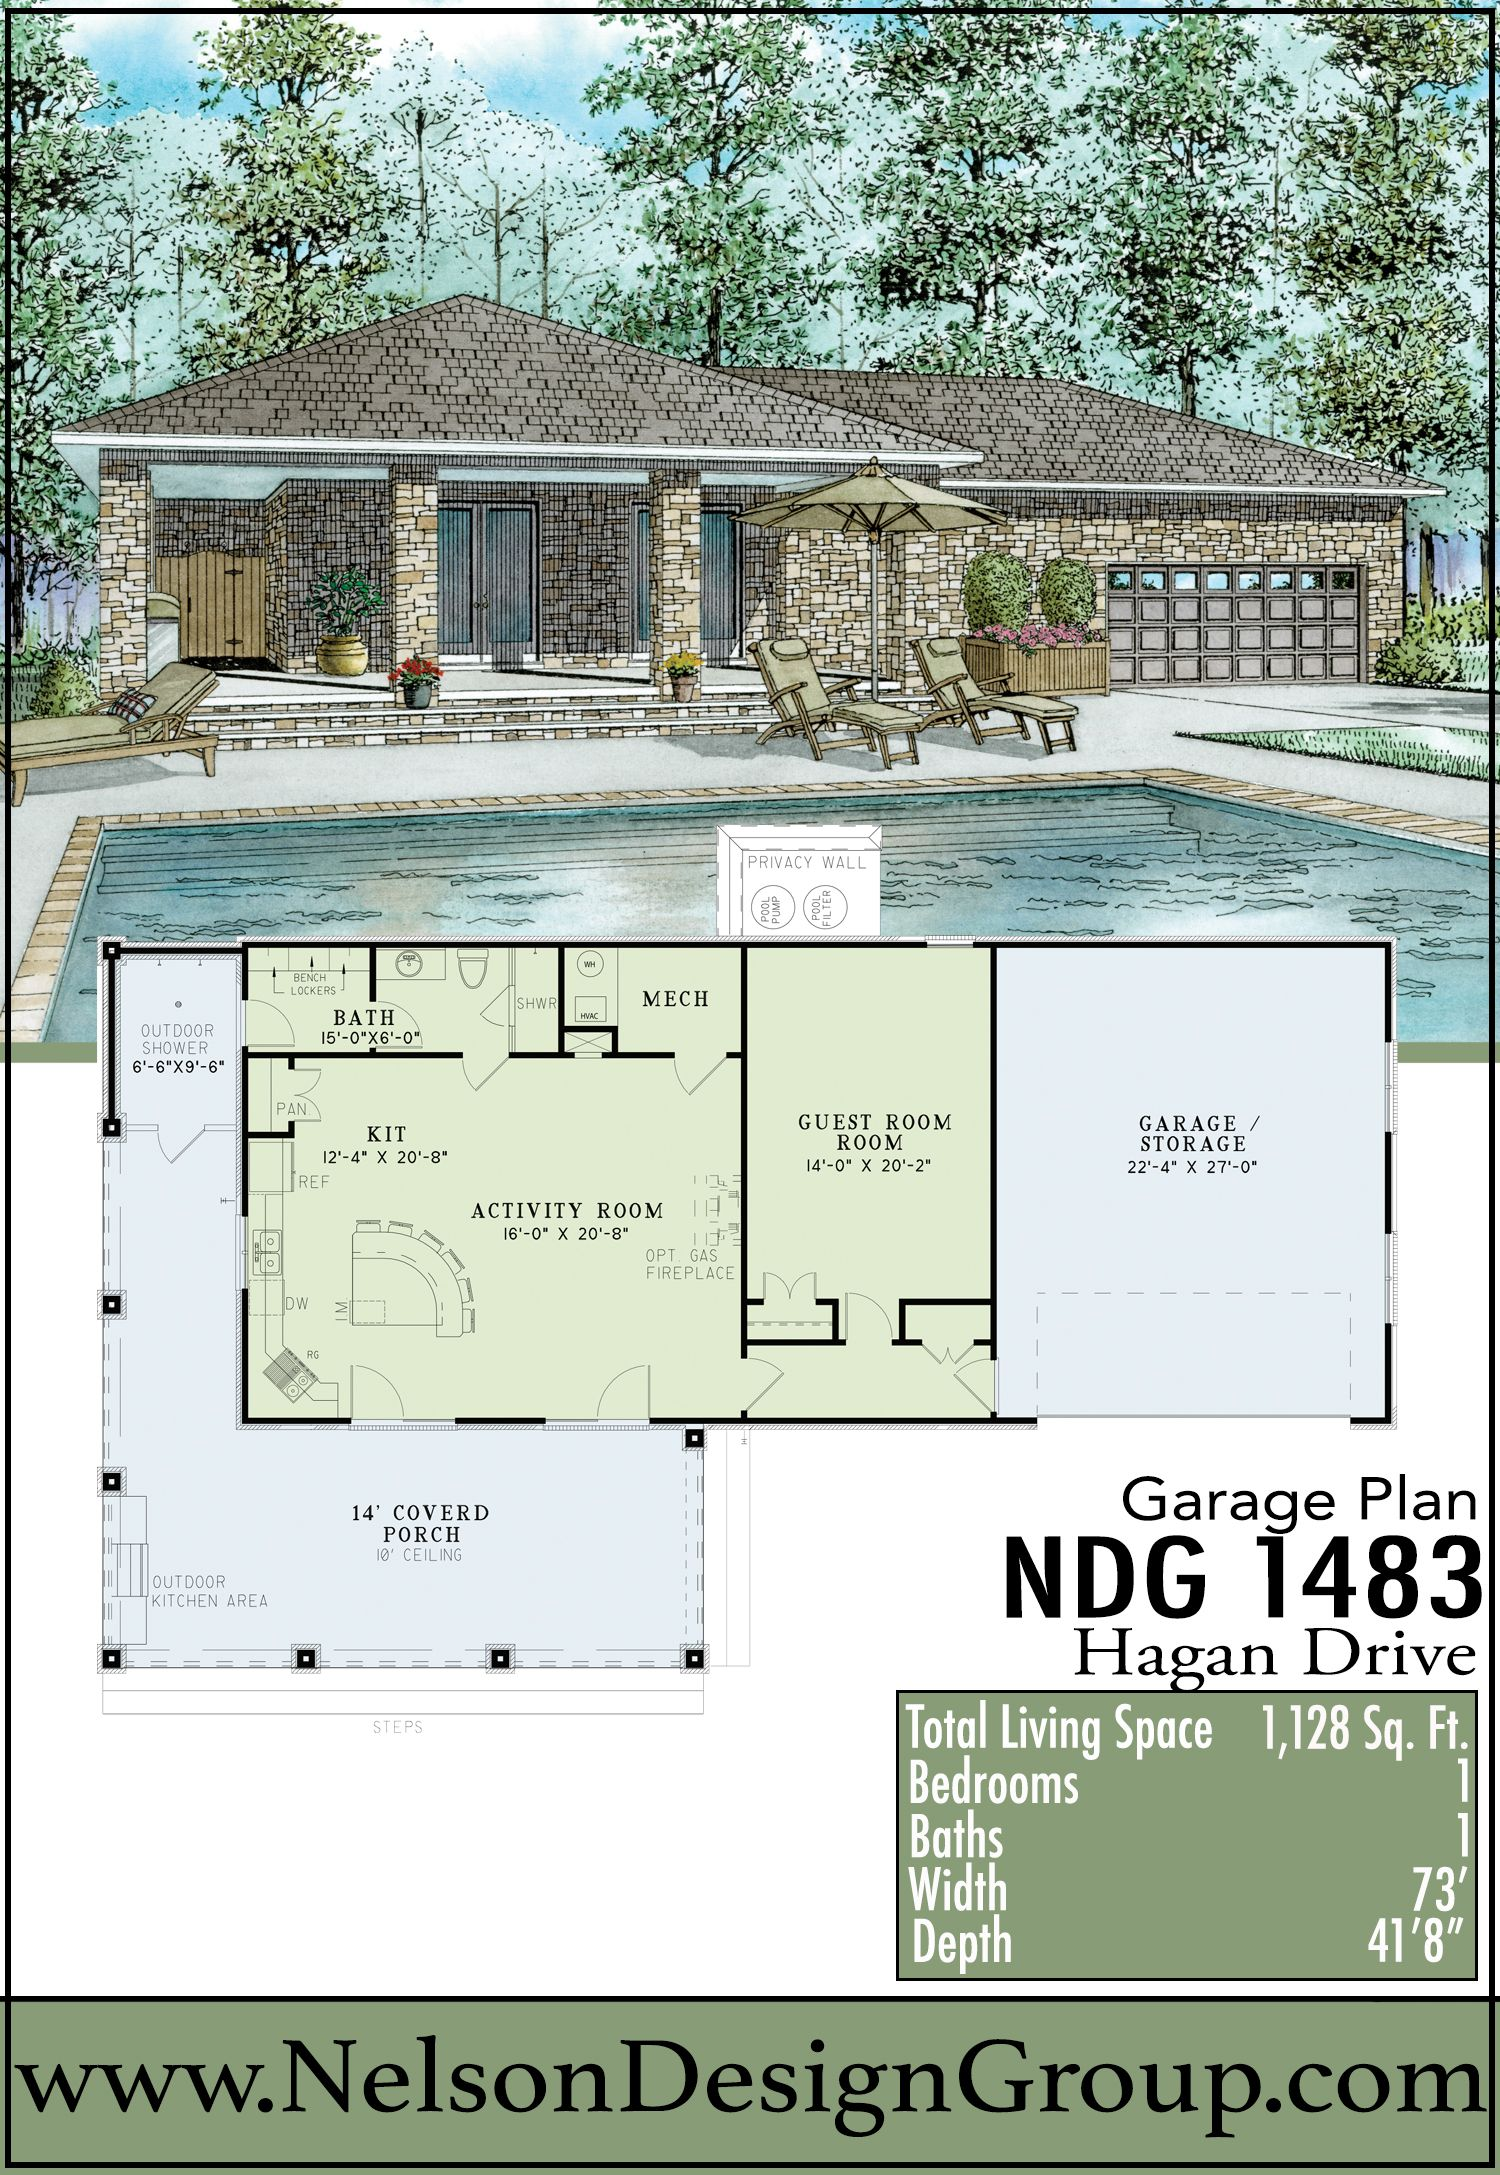 Garages Pool Poolhouse Homeplans Houseplans Homes Houses Loftstyle Drive Pool House Pool Houses Pool House Plans